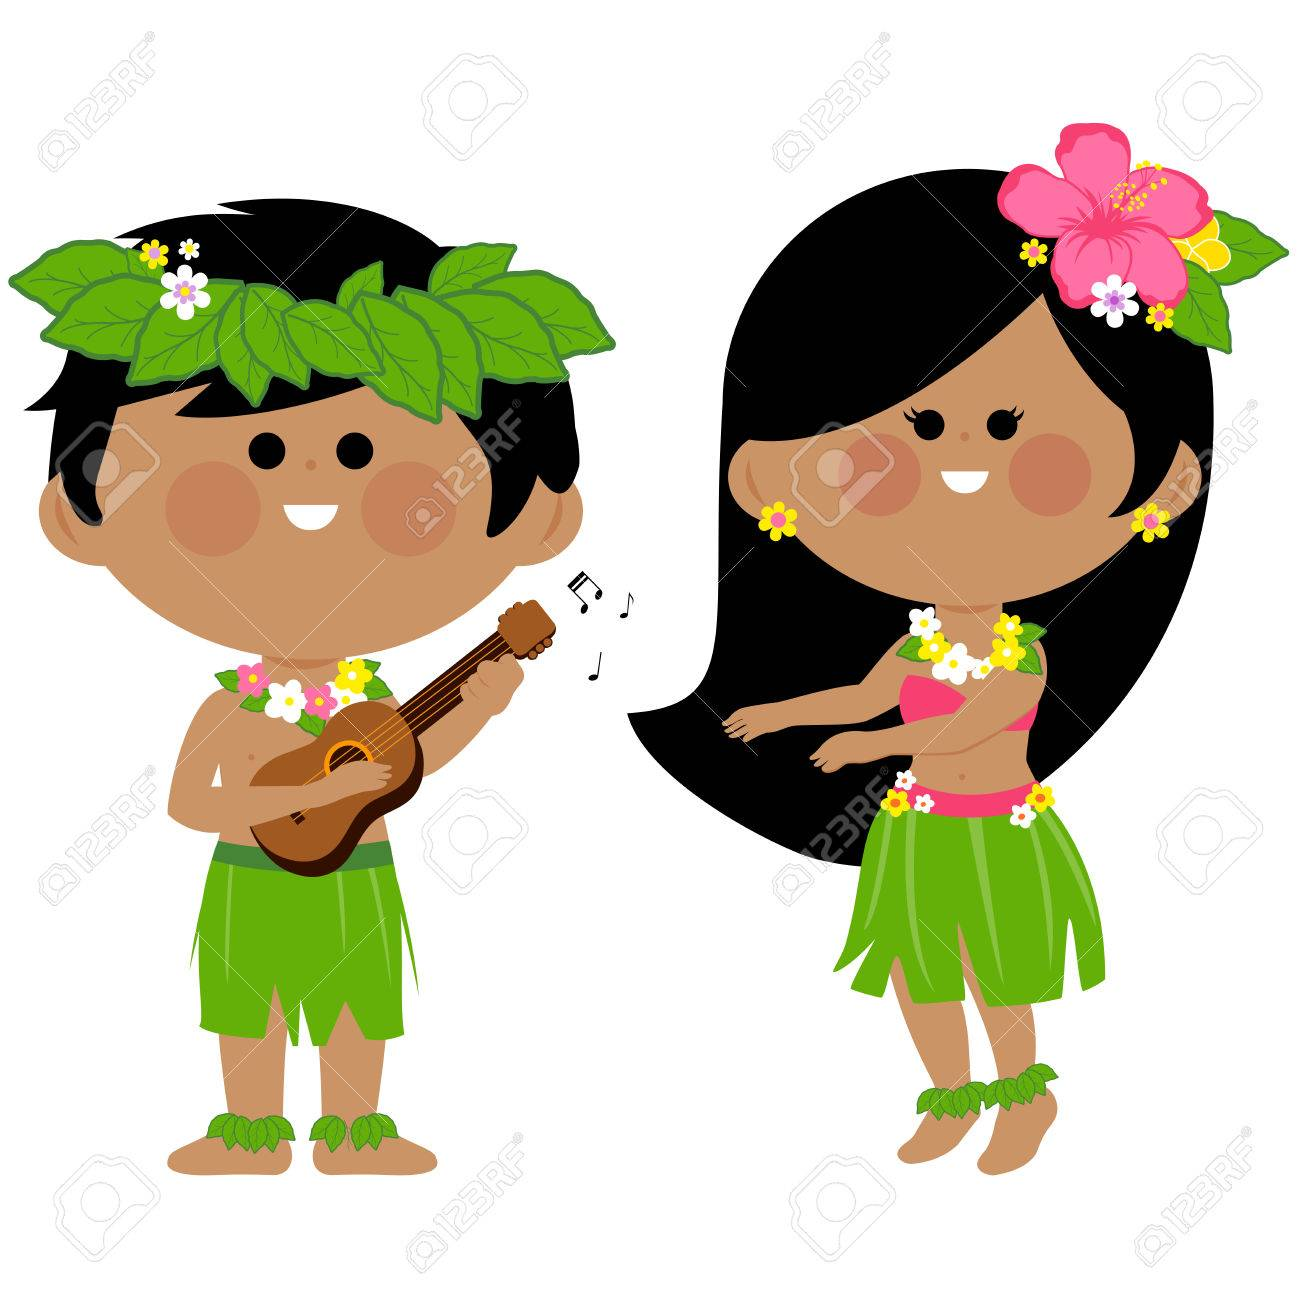 hawaiian children playing music and hula dancing royalty free rh 123rf com Luau Clip Art hula dancer clipart free